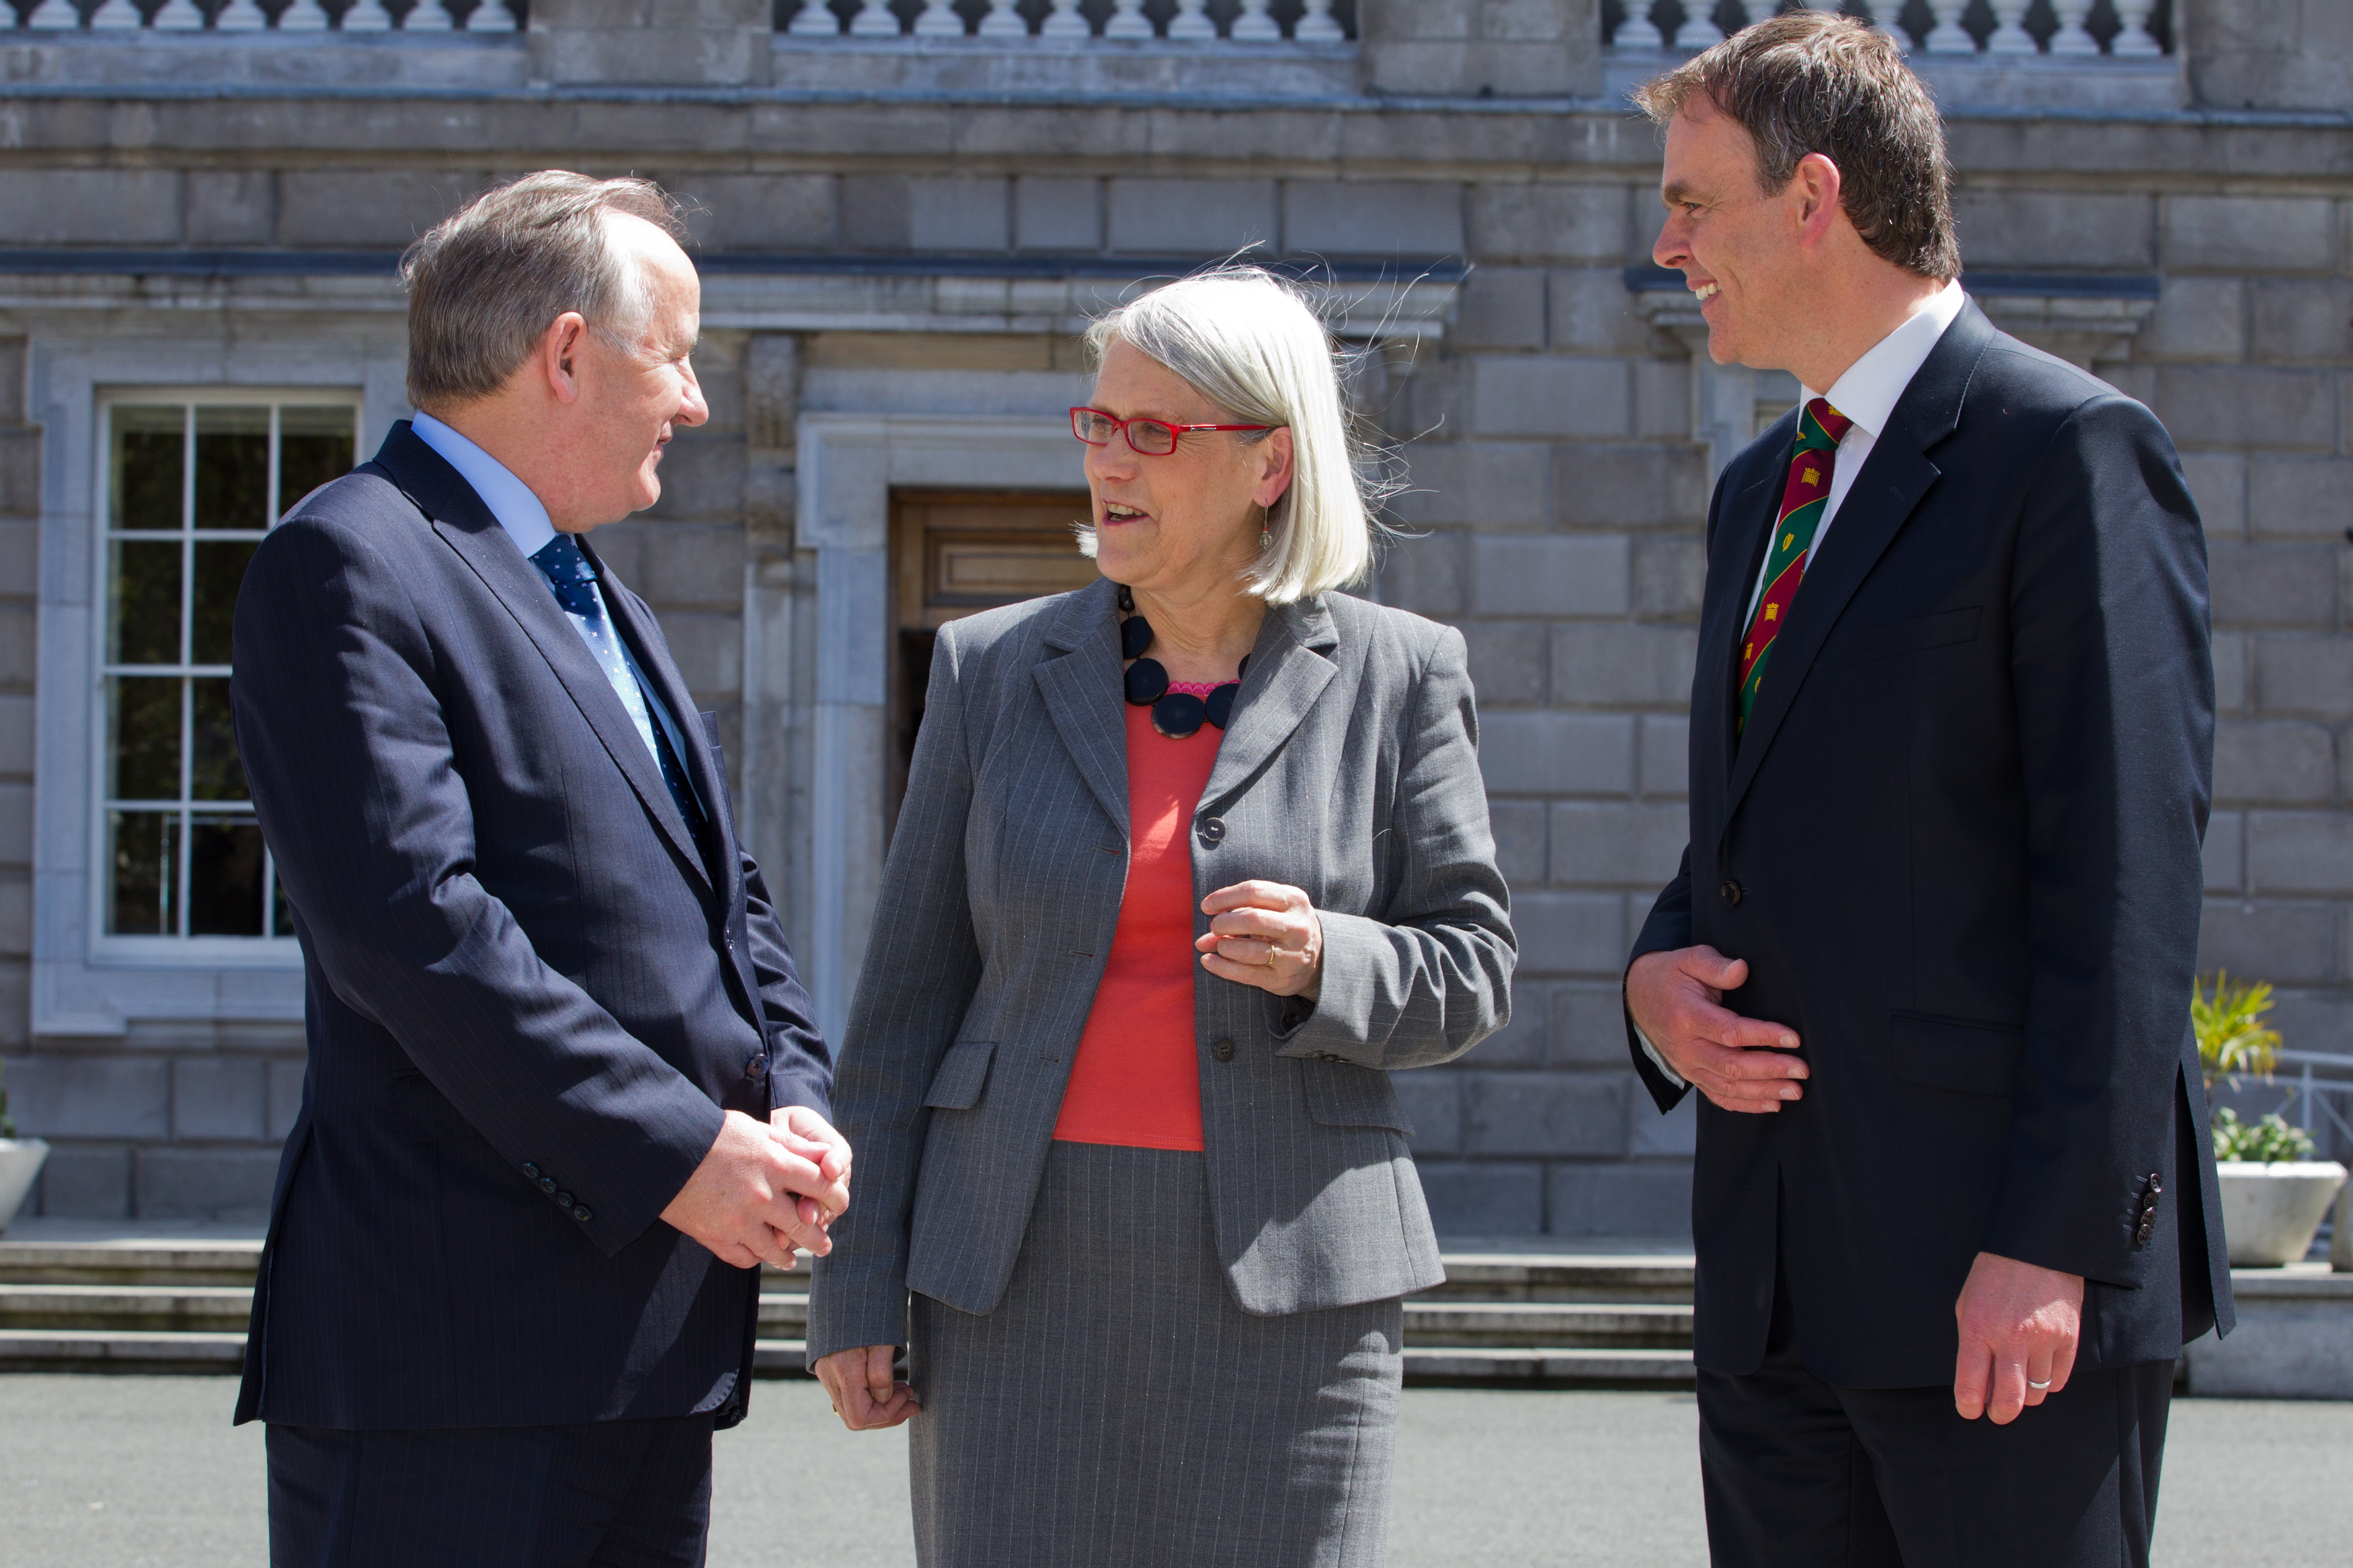 Darina Allen of Ballymaloe Cookery School, with BIPA Co-Chairs Joe McHugh TD and Laurence Robertson MP, after her address to the 44th plenary in Leinster House